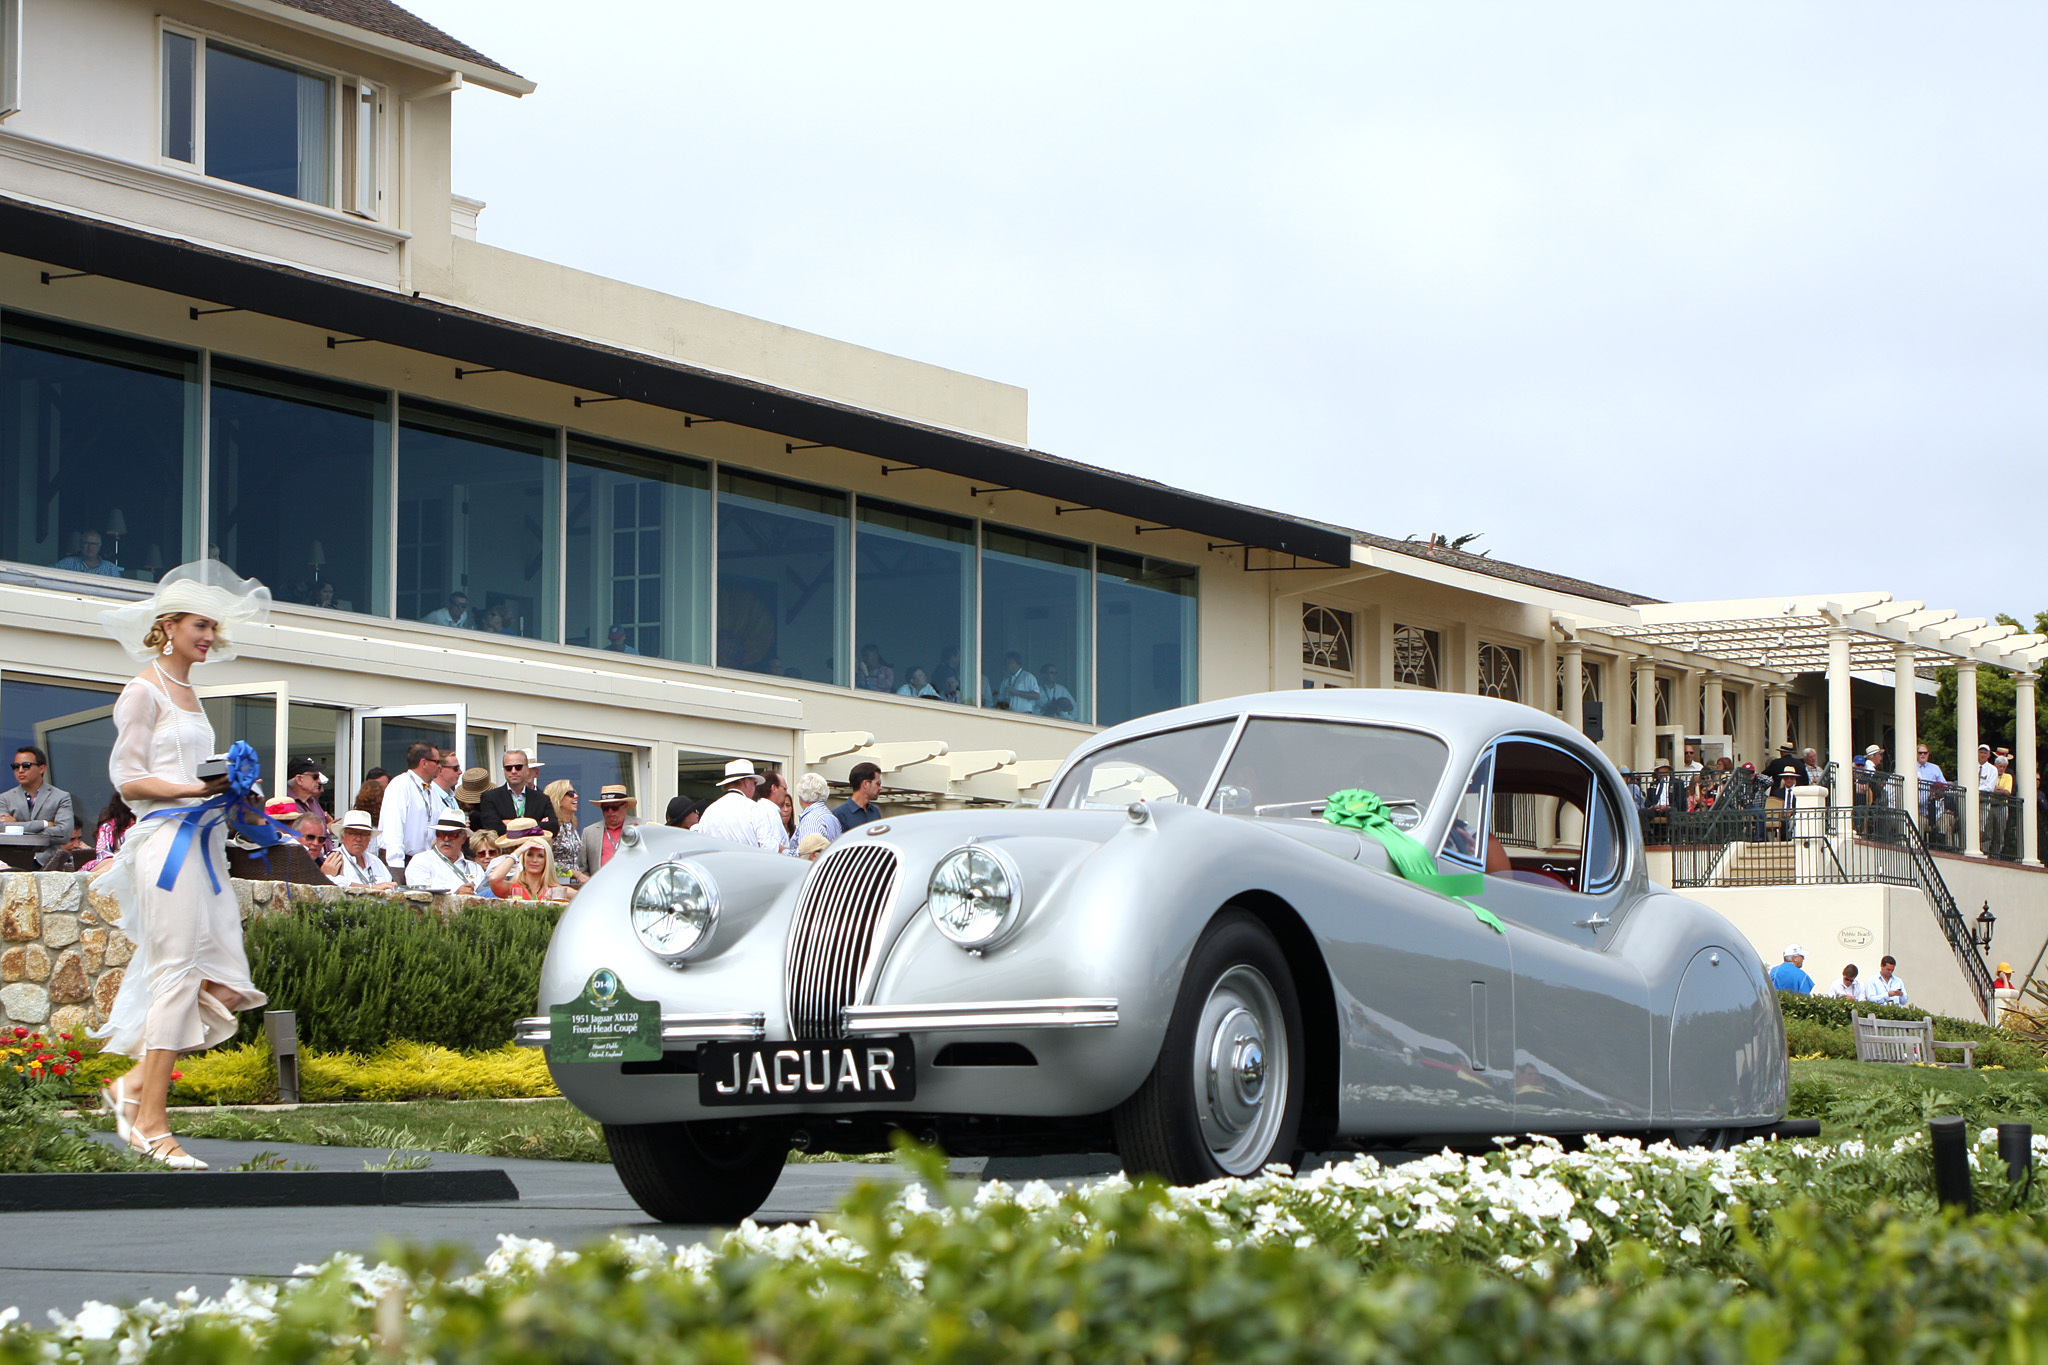 1951 Jaguar XK120 Fixed Head Coupé Prototype 679002 won Class O-1 : Postwar Touring. This important XK120 (chassis 679002) is the first left-hand-drive Fixed Head Coupé and was the 1951 Geneva Show car. Jaguar used this car for publicity shots for the official launch of the Coupé. One of two prototypes, 679002 was converted from an XK120 Roadster in Jaguar's experimental department.